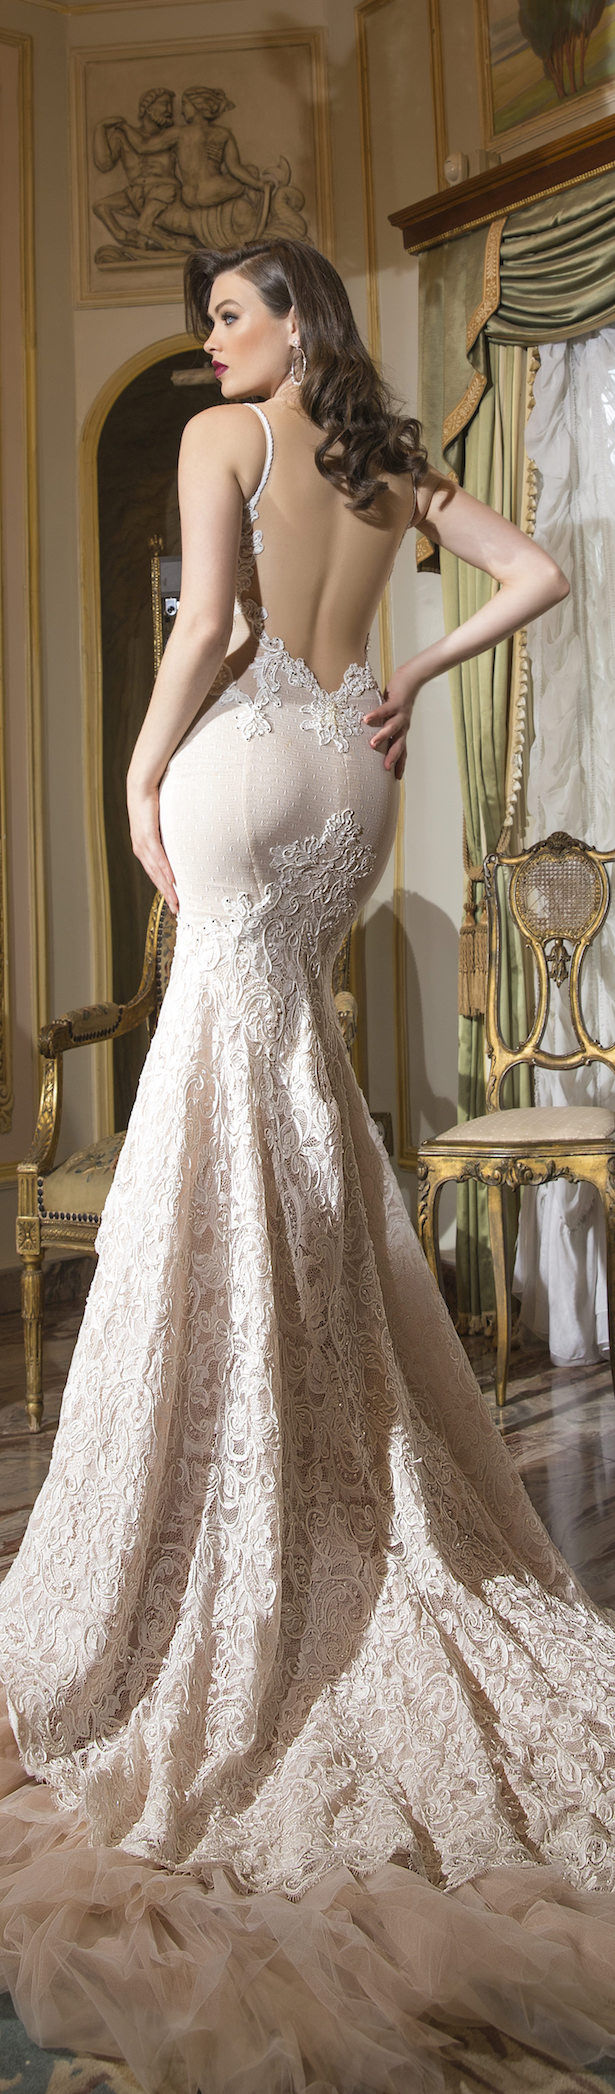 Shabi israel haute couture 2016 bridal collection for Haute wedding